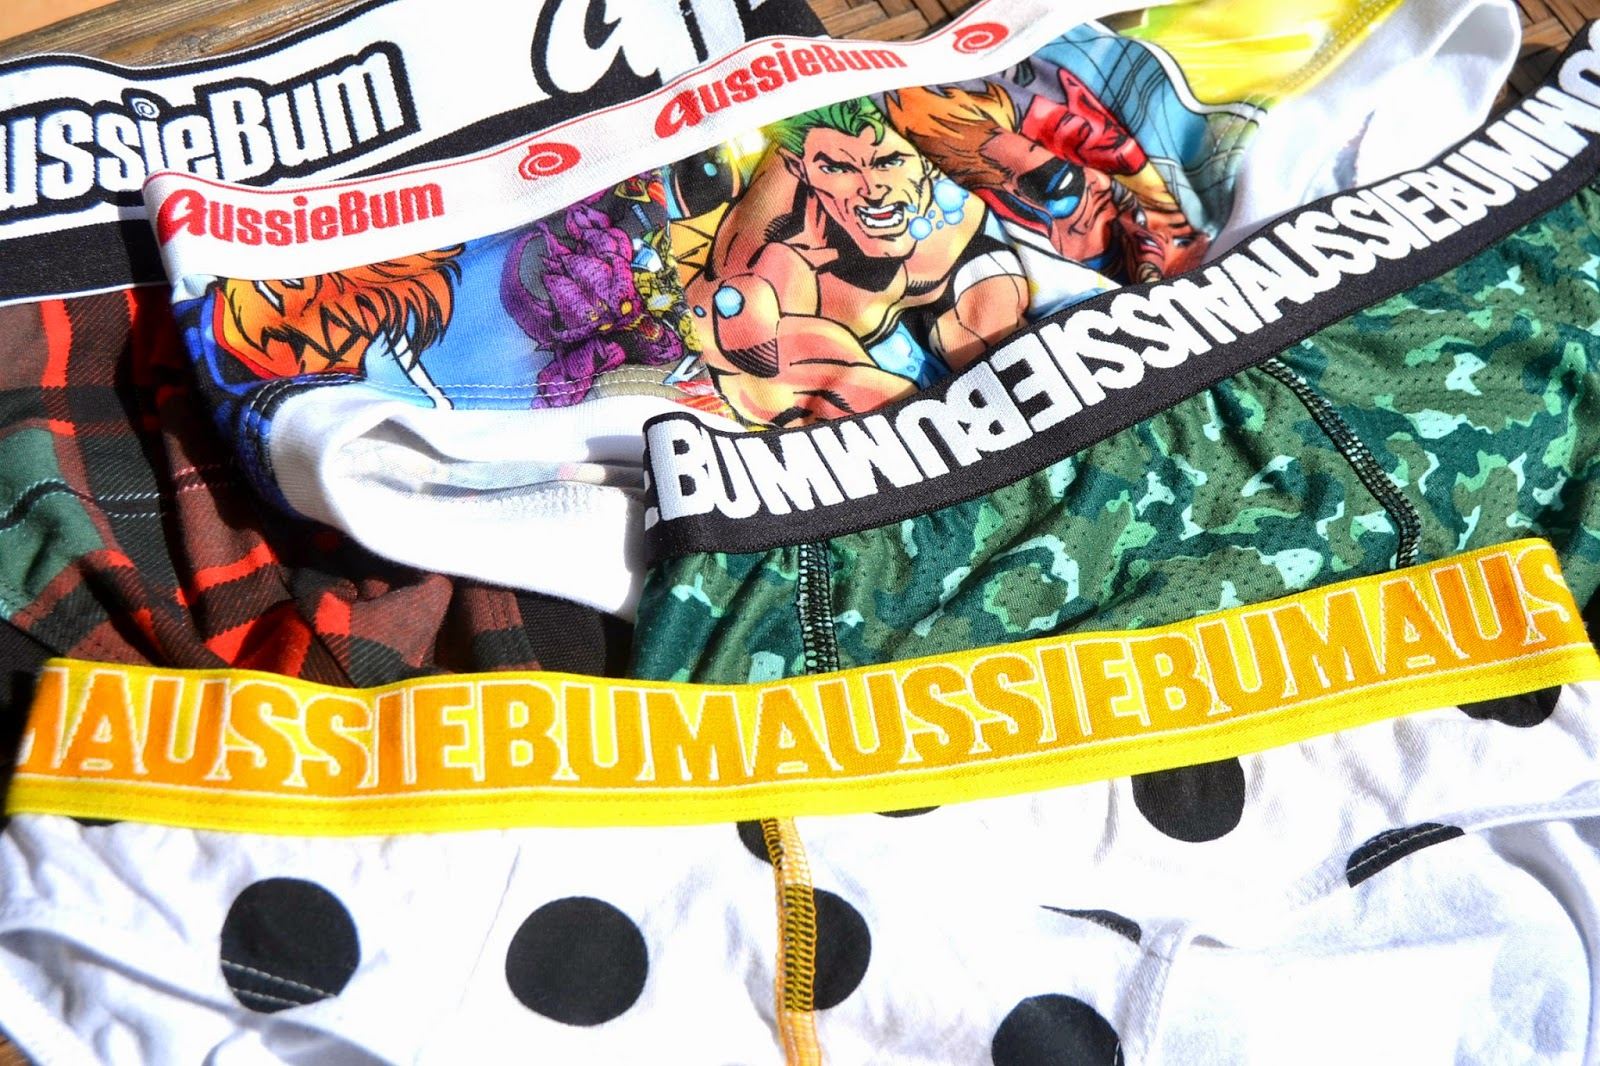 http://www.syriouslyinfashion.com/2015/03/rocking-my-new-aussiebum-underwear.html